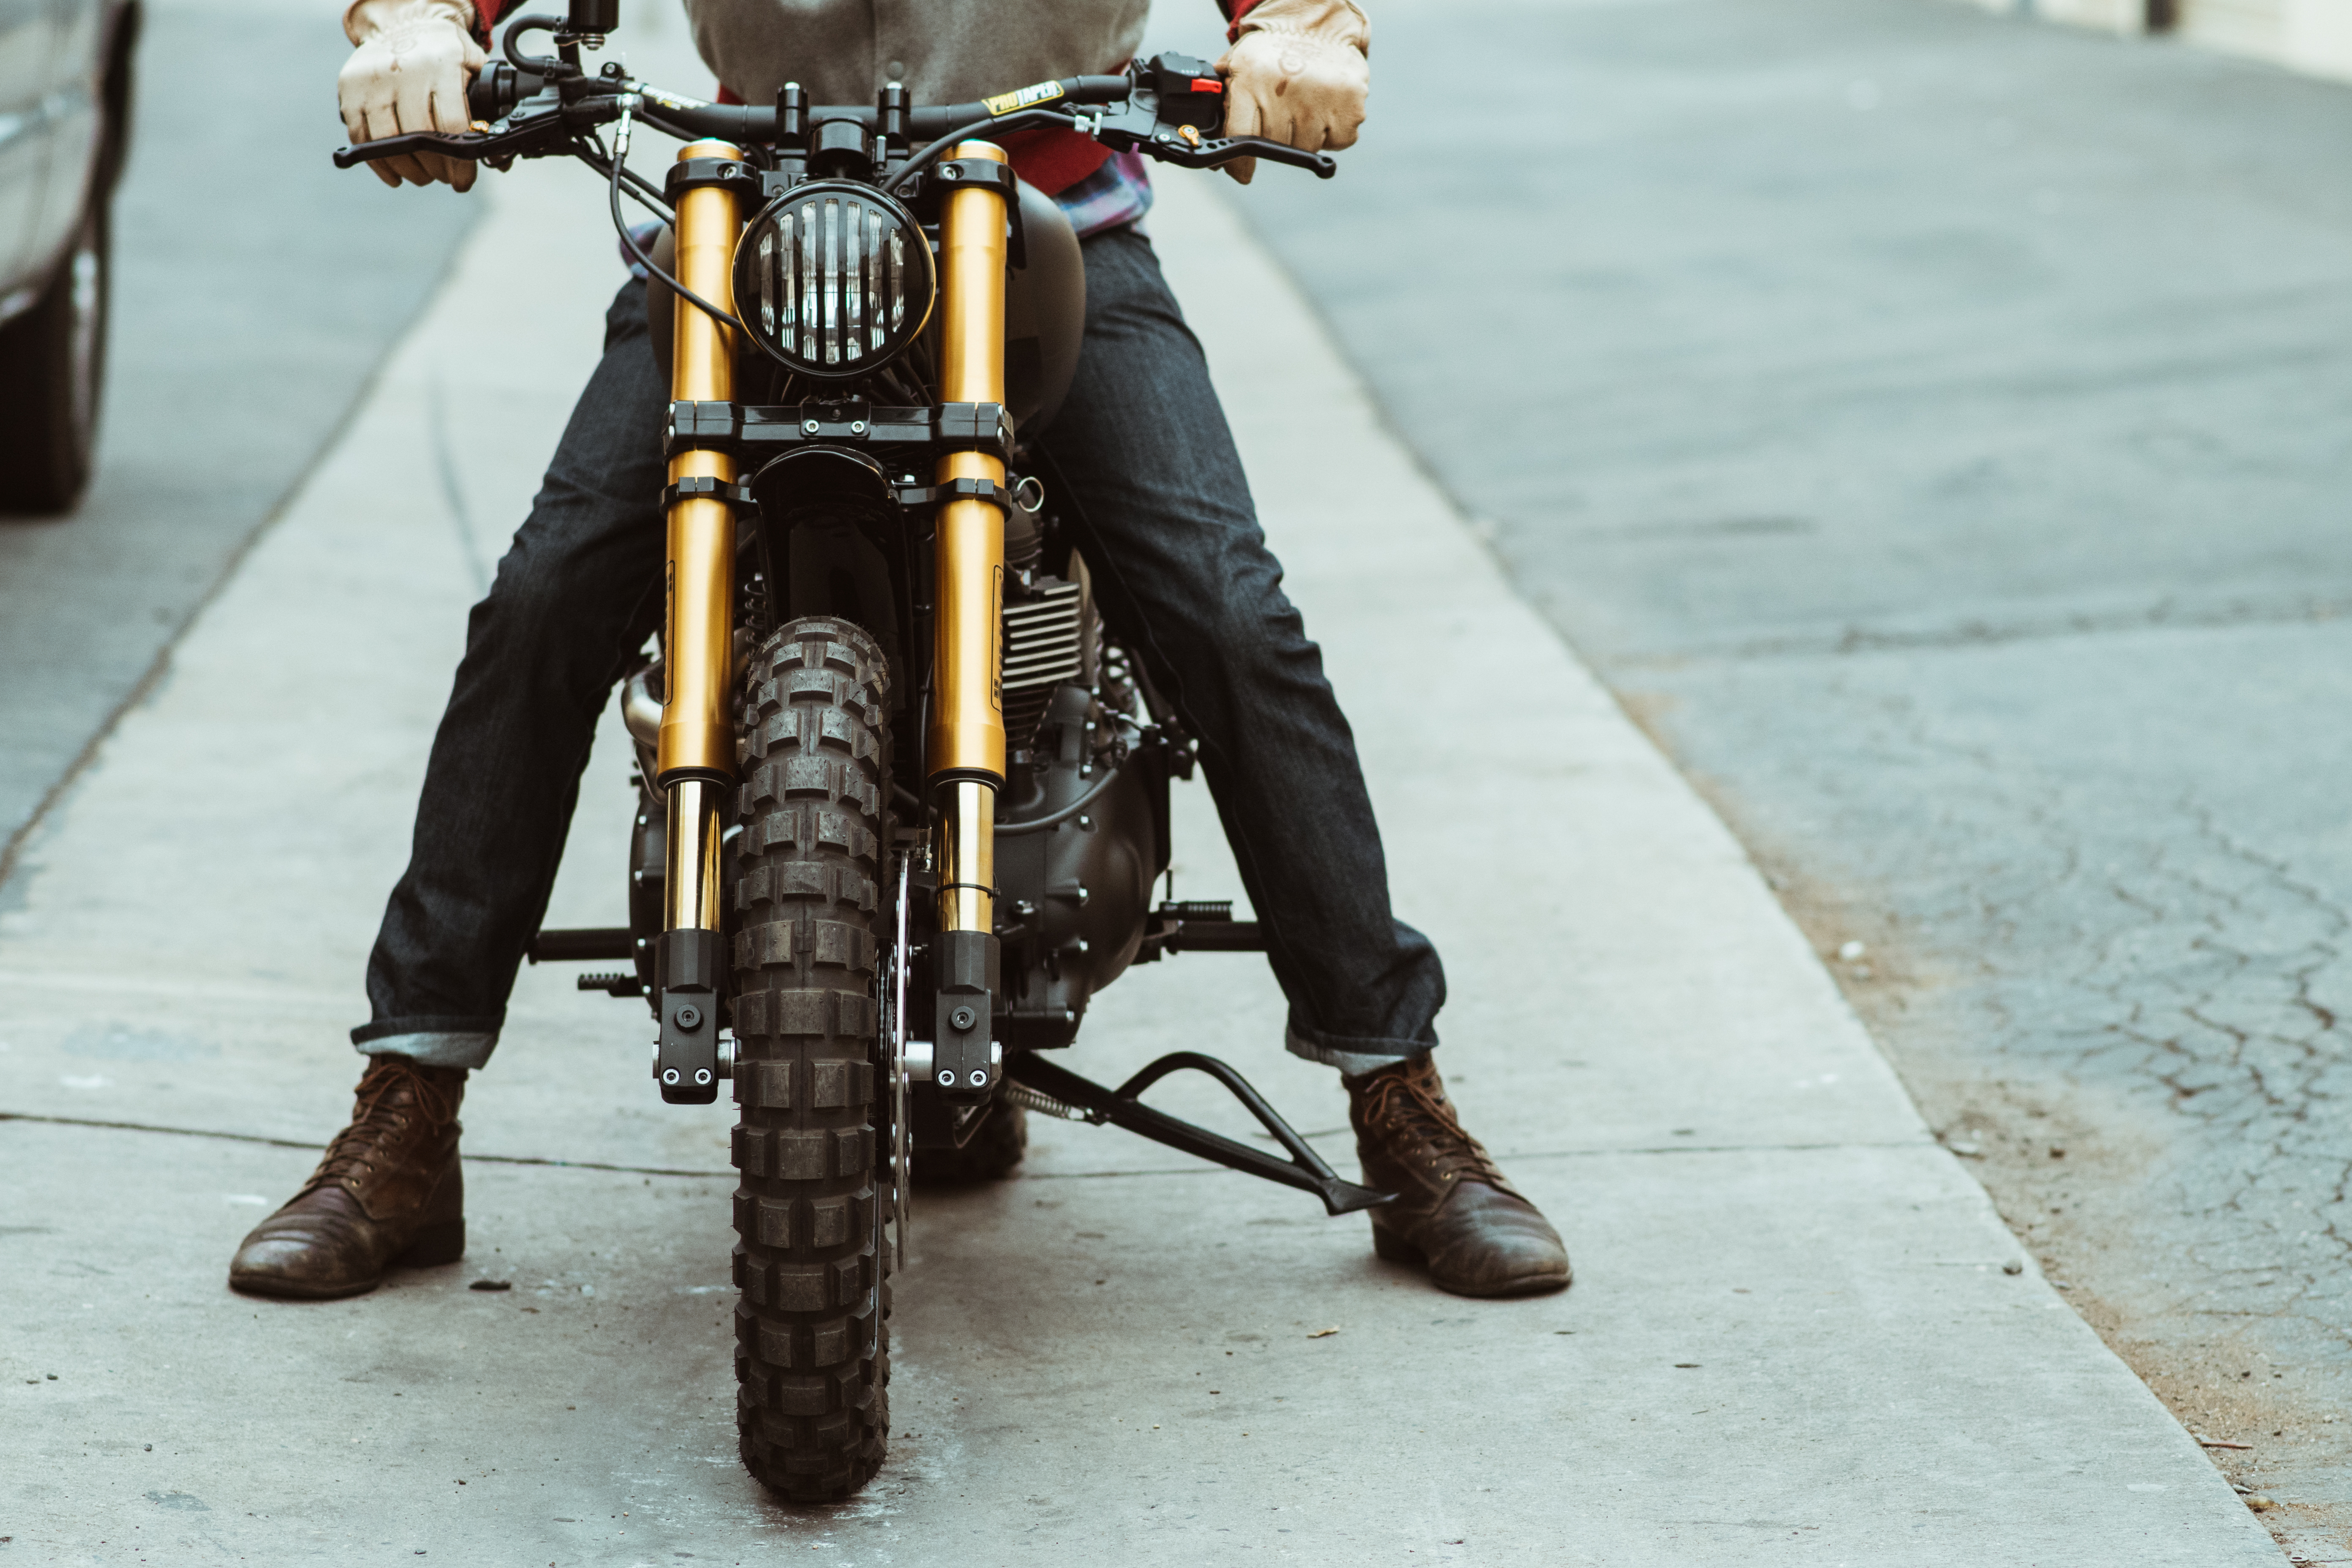 Seaweed and Gravel's custom Triumph Scrambler